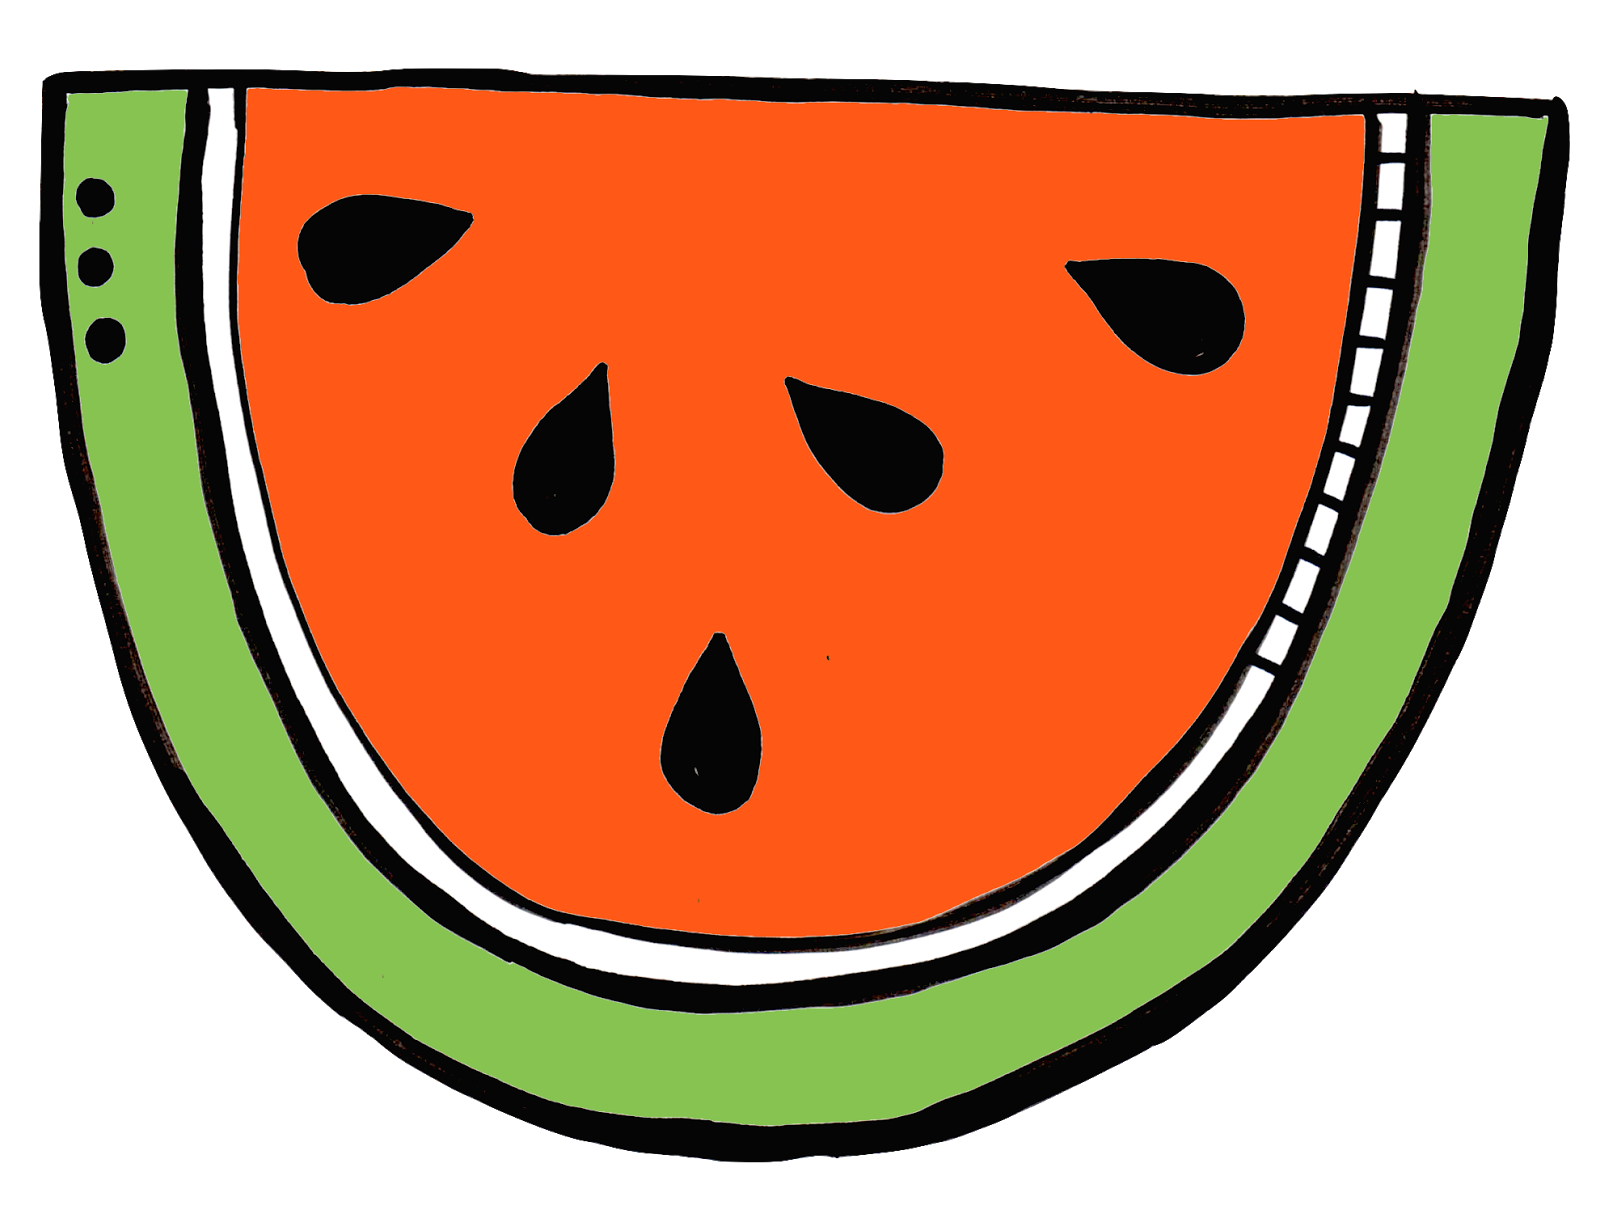 Watermelon clipart gambar. March happiness is shaped